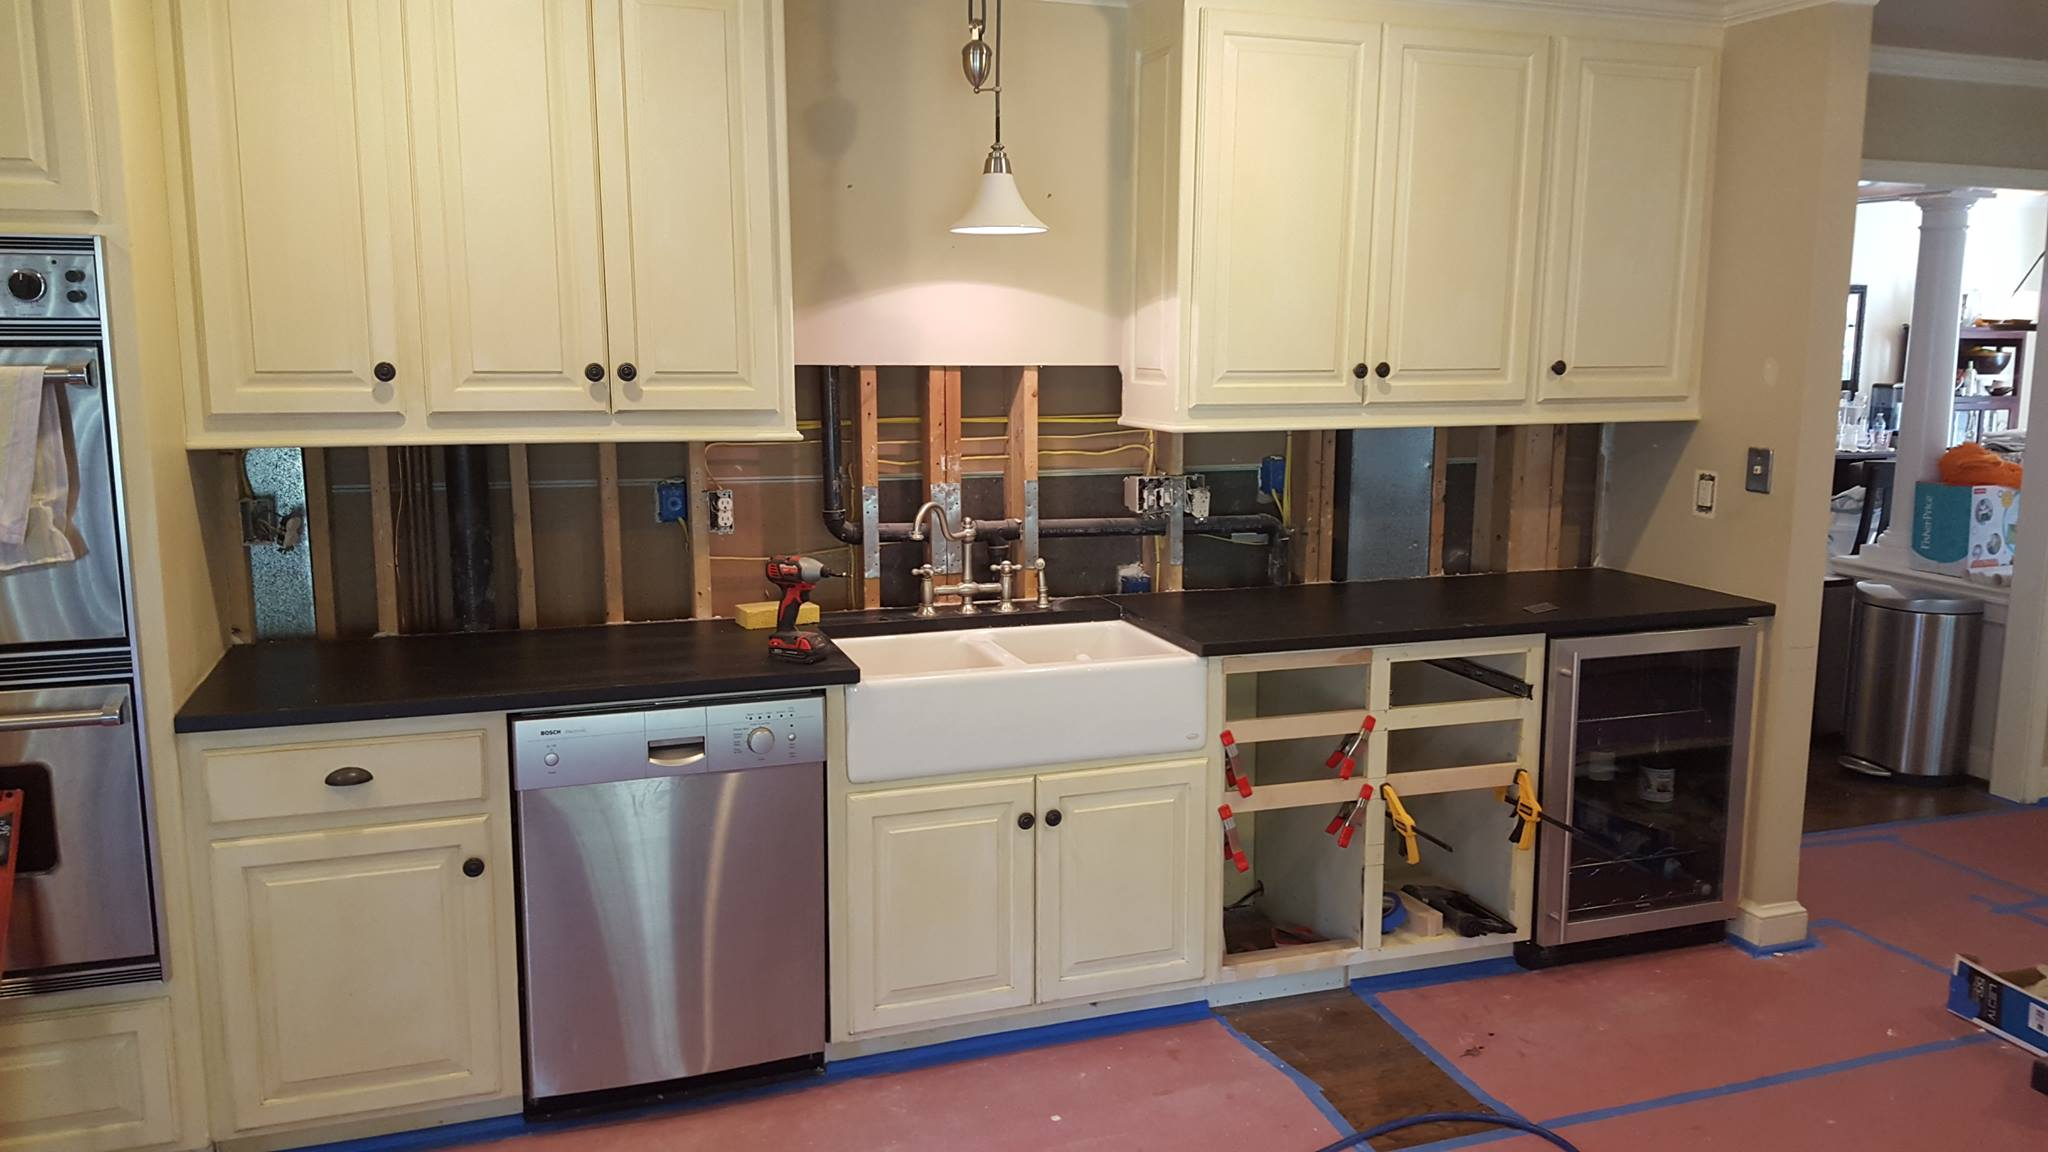 Kitchen cabinet repair service kitchen cabinets for Kitchen cabinets repair